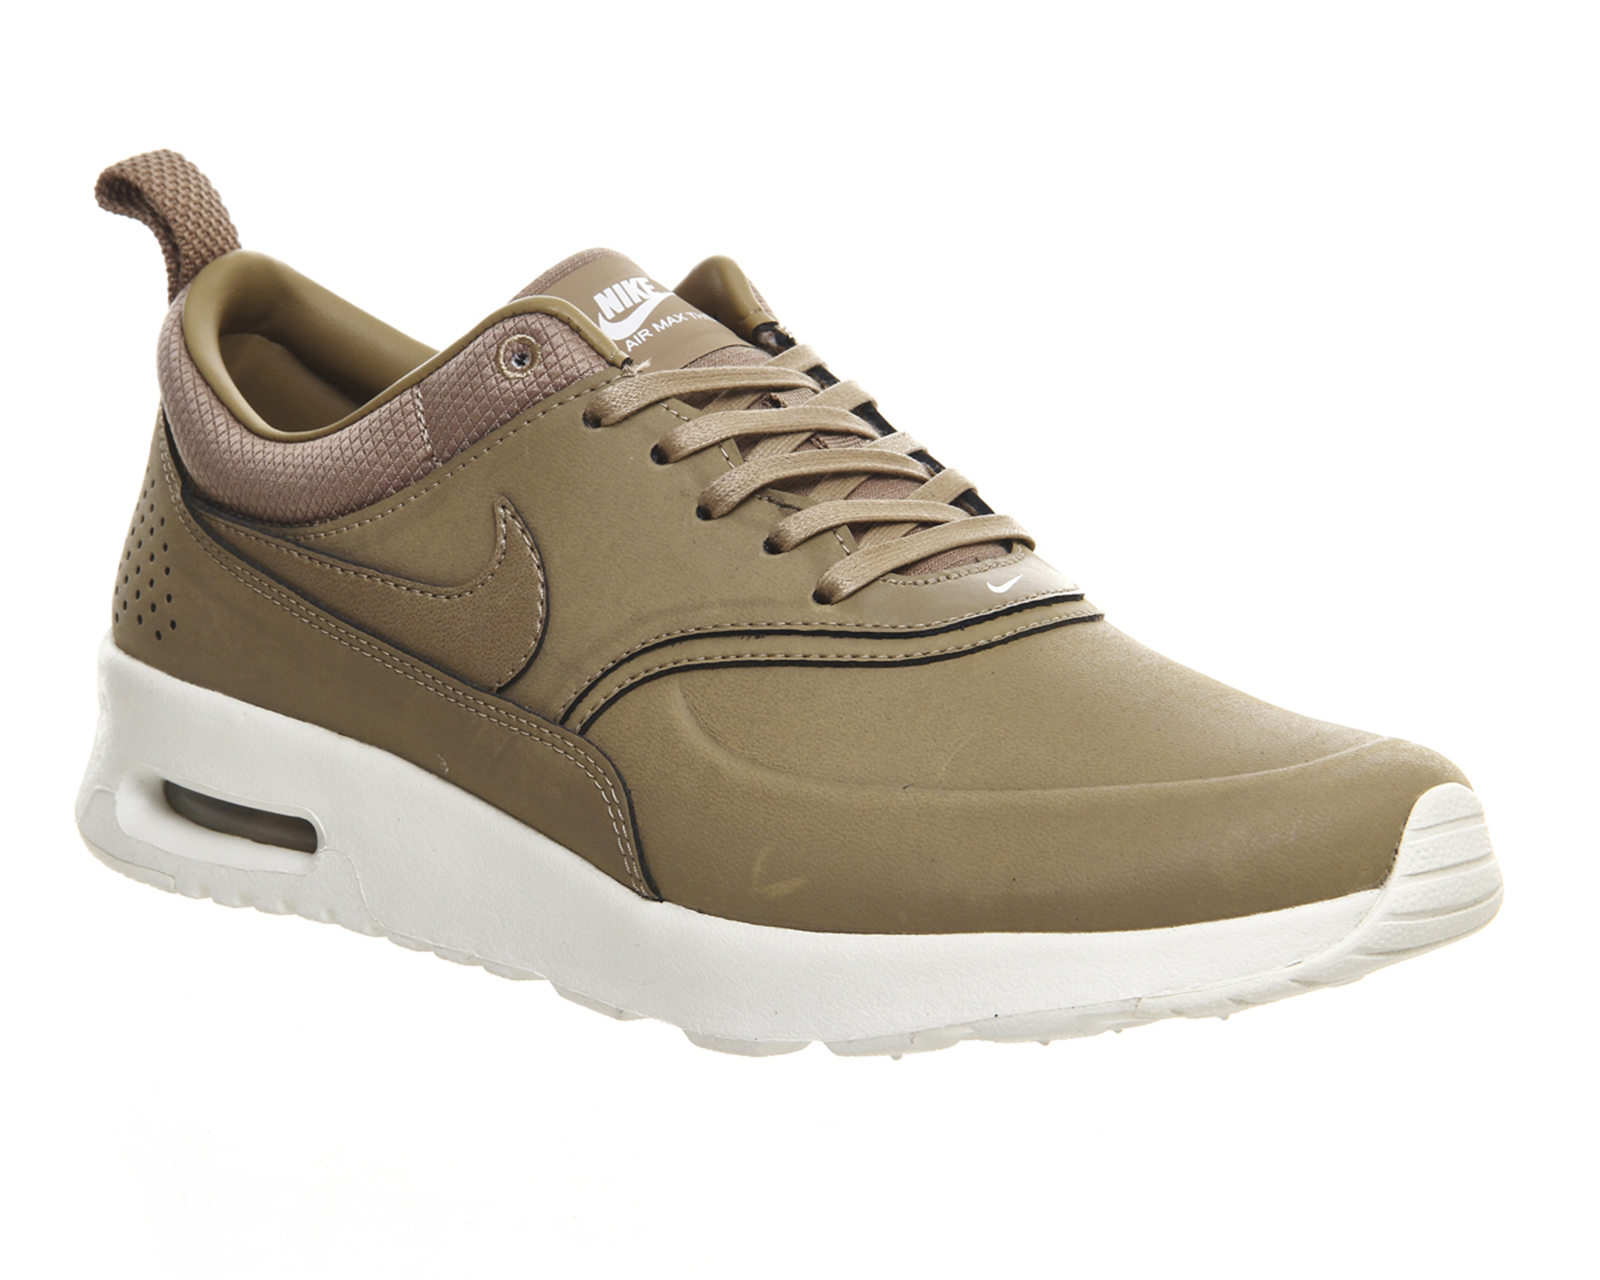 nike air max thea in beige desert lyst. Black Bedroom Furniture Sets. Home Design Ideas